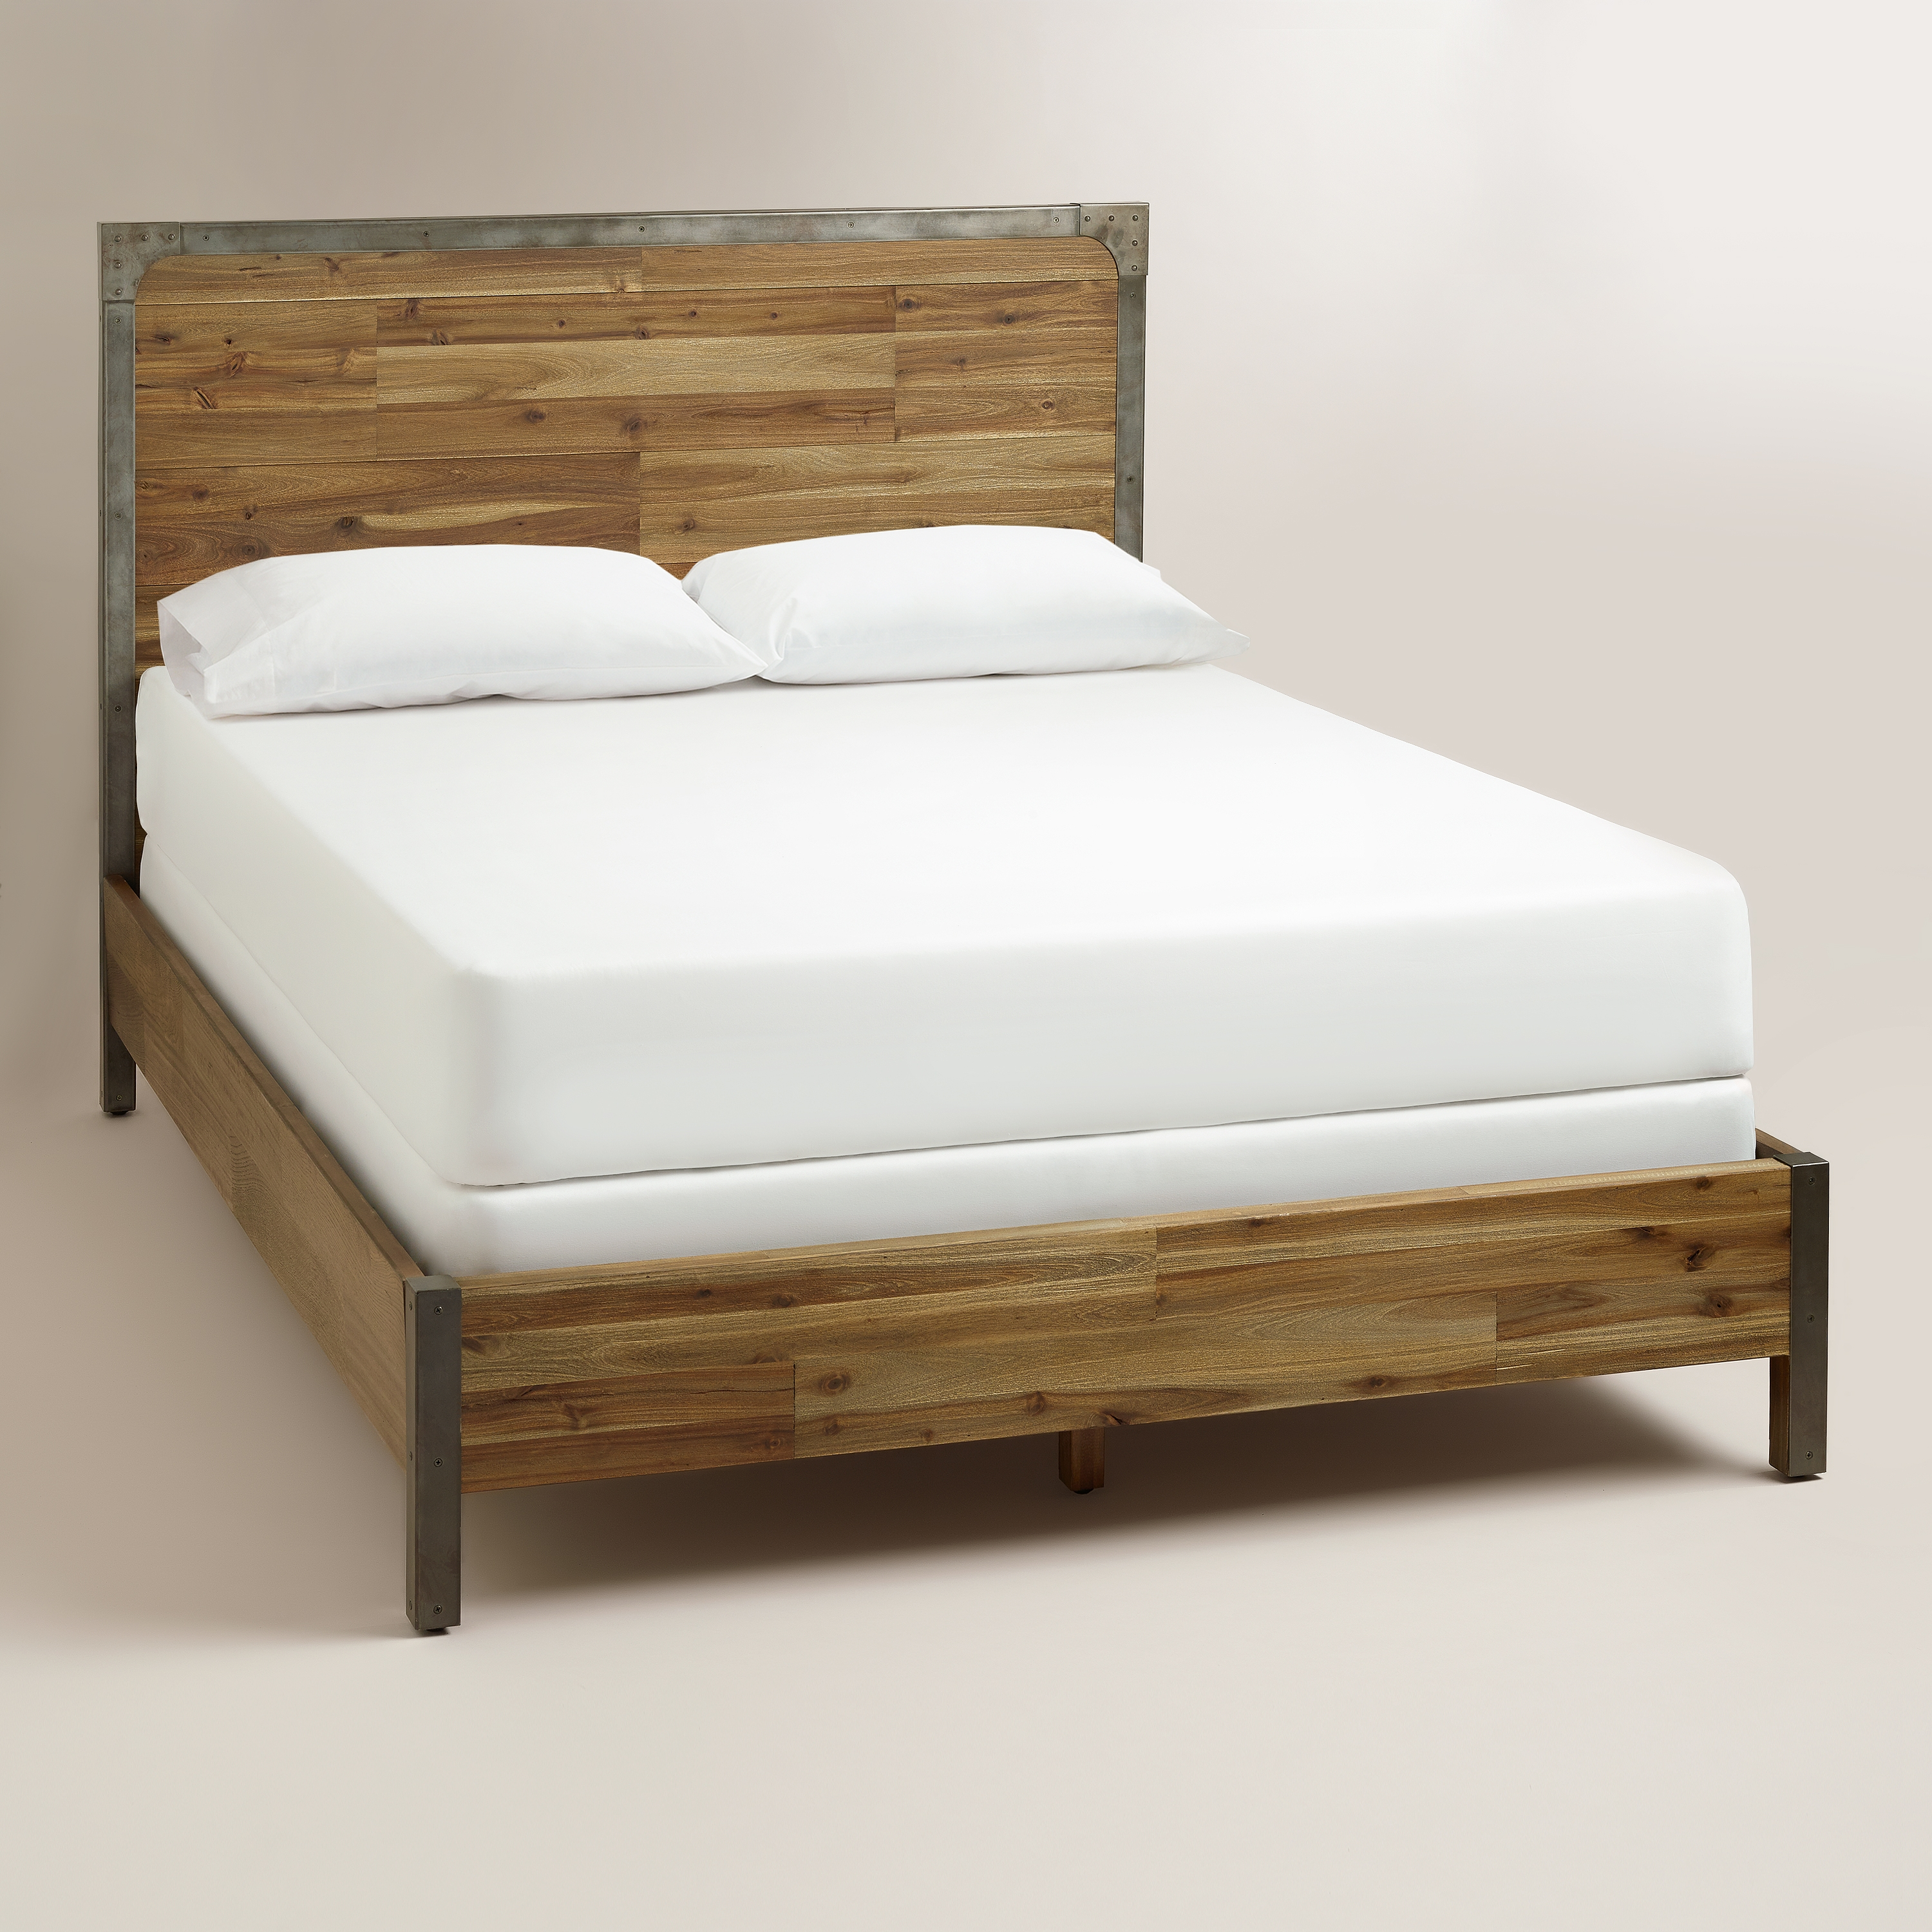 Wood And Metal Bed Frame